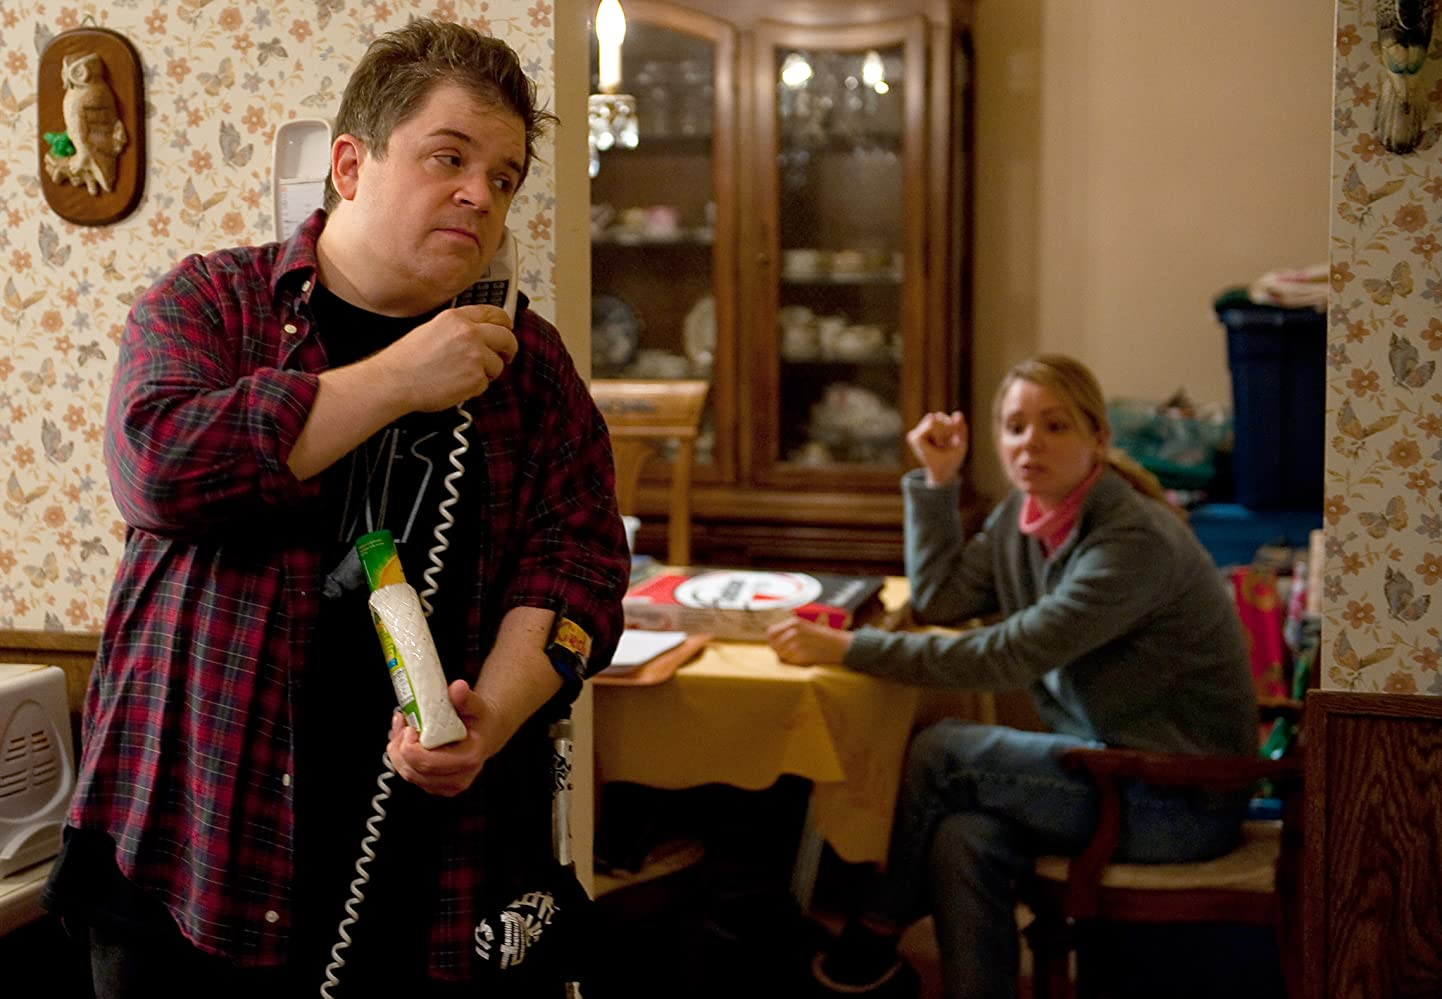 Patton Oswalt and Collette Wolfe in Young Adult (2011)